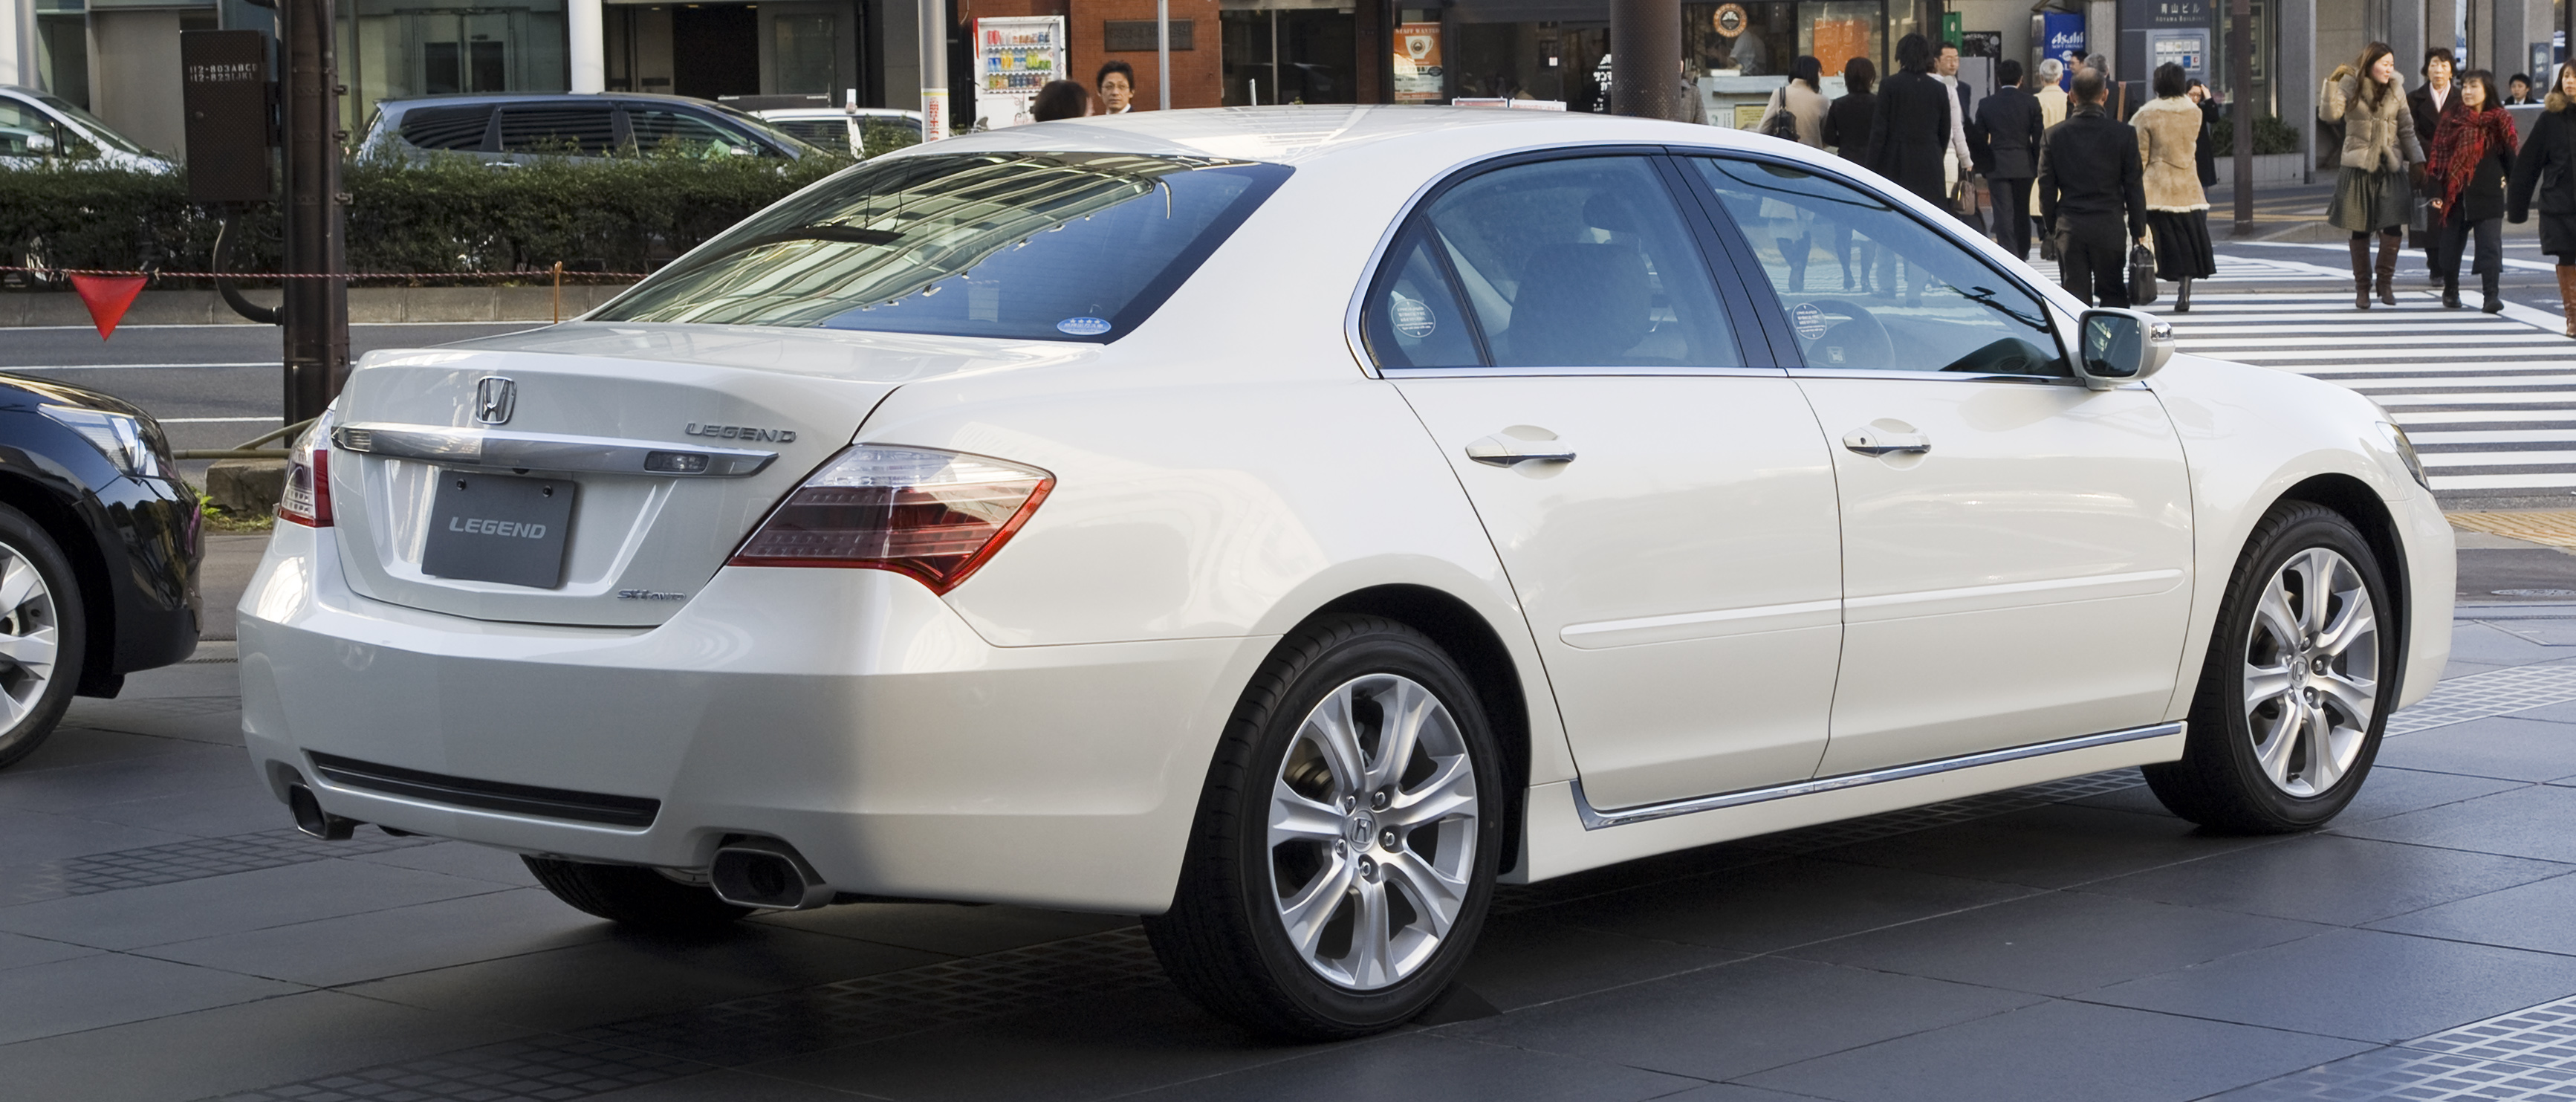 honda legend iv (kb1) 2010 wallpaper #3